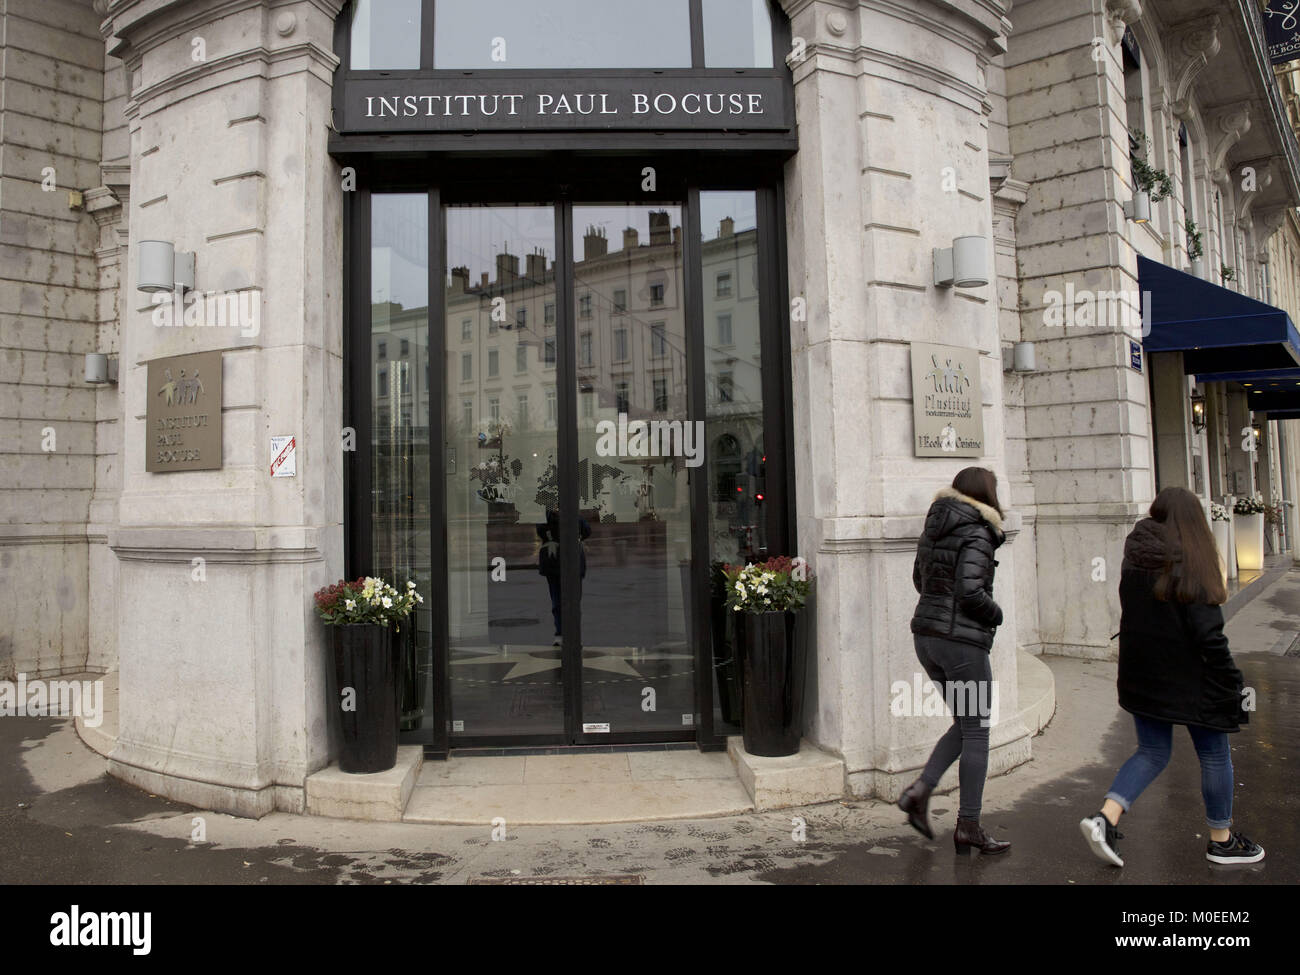 Lyon France 21st Jan 2018 Le Royal Is The Hotel And Restaurant